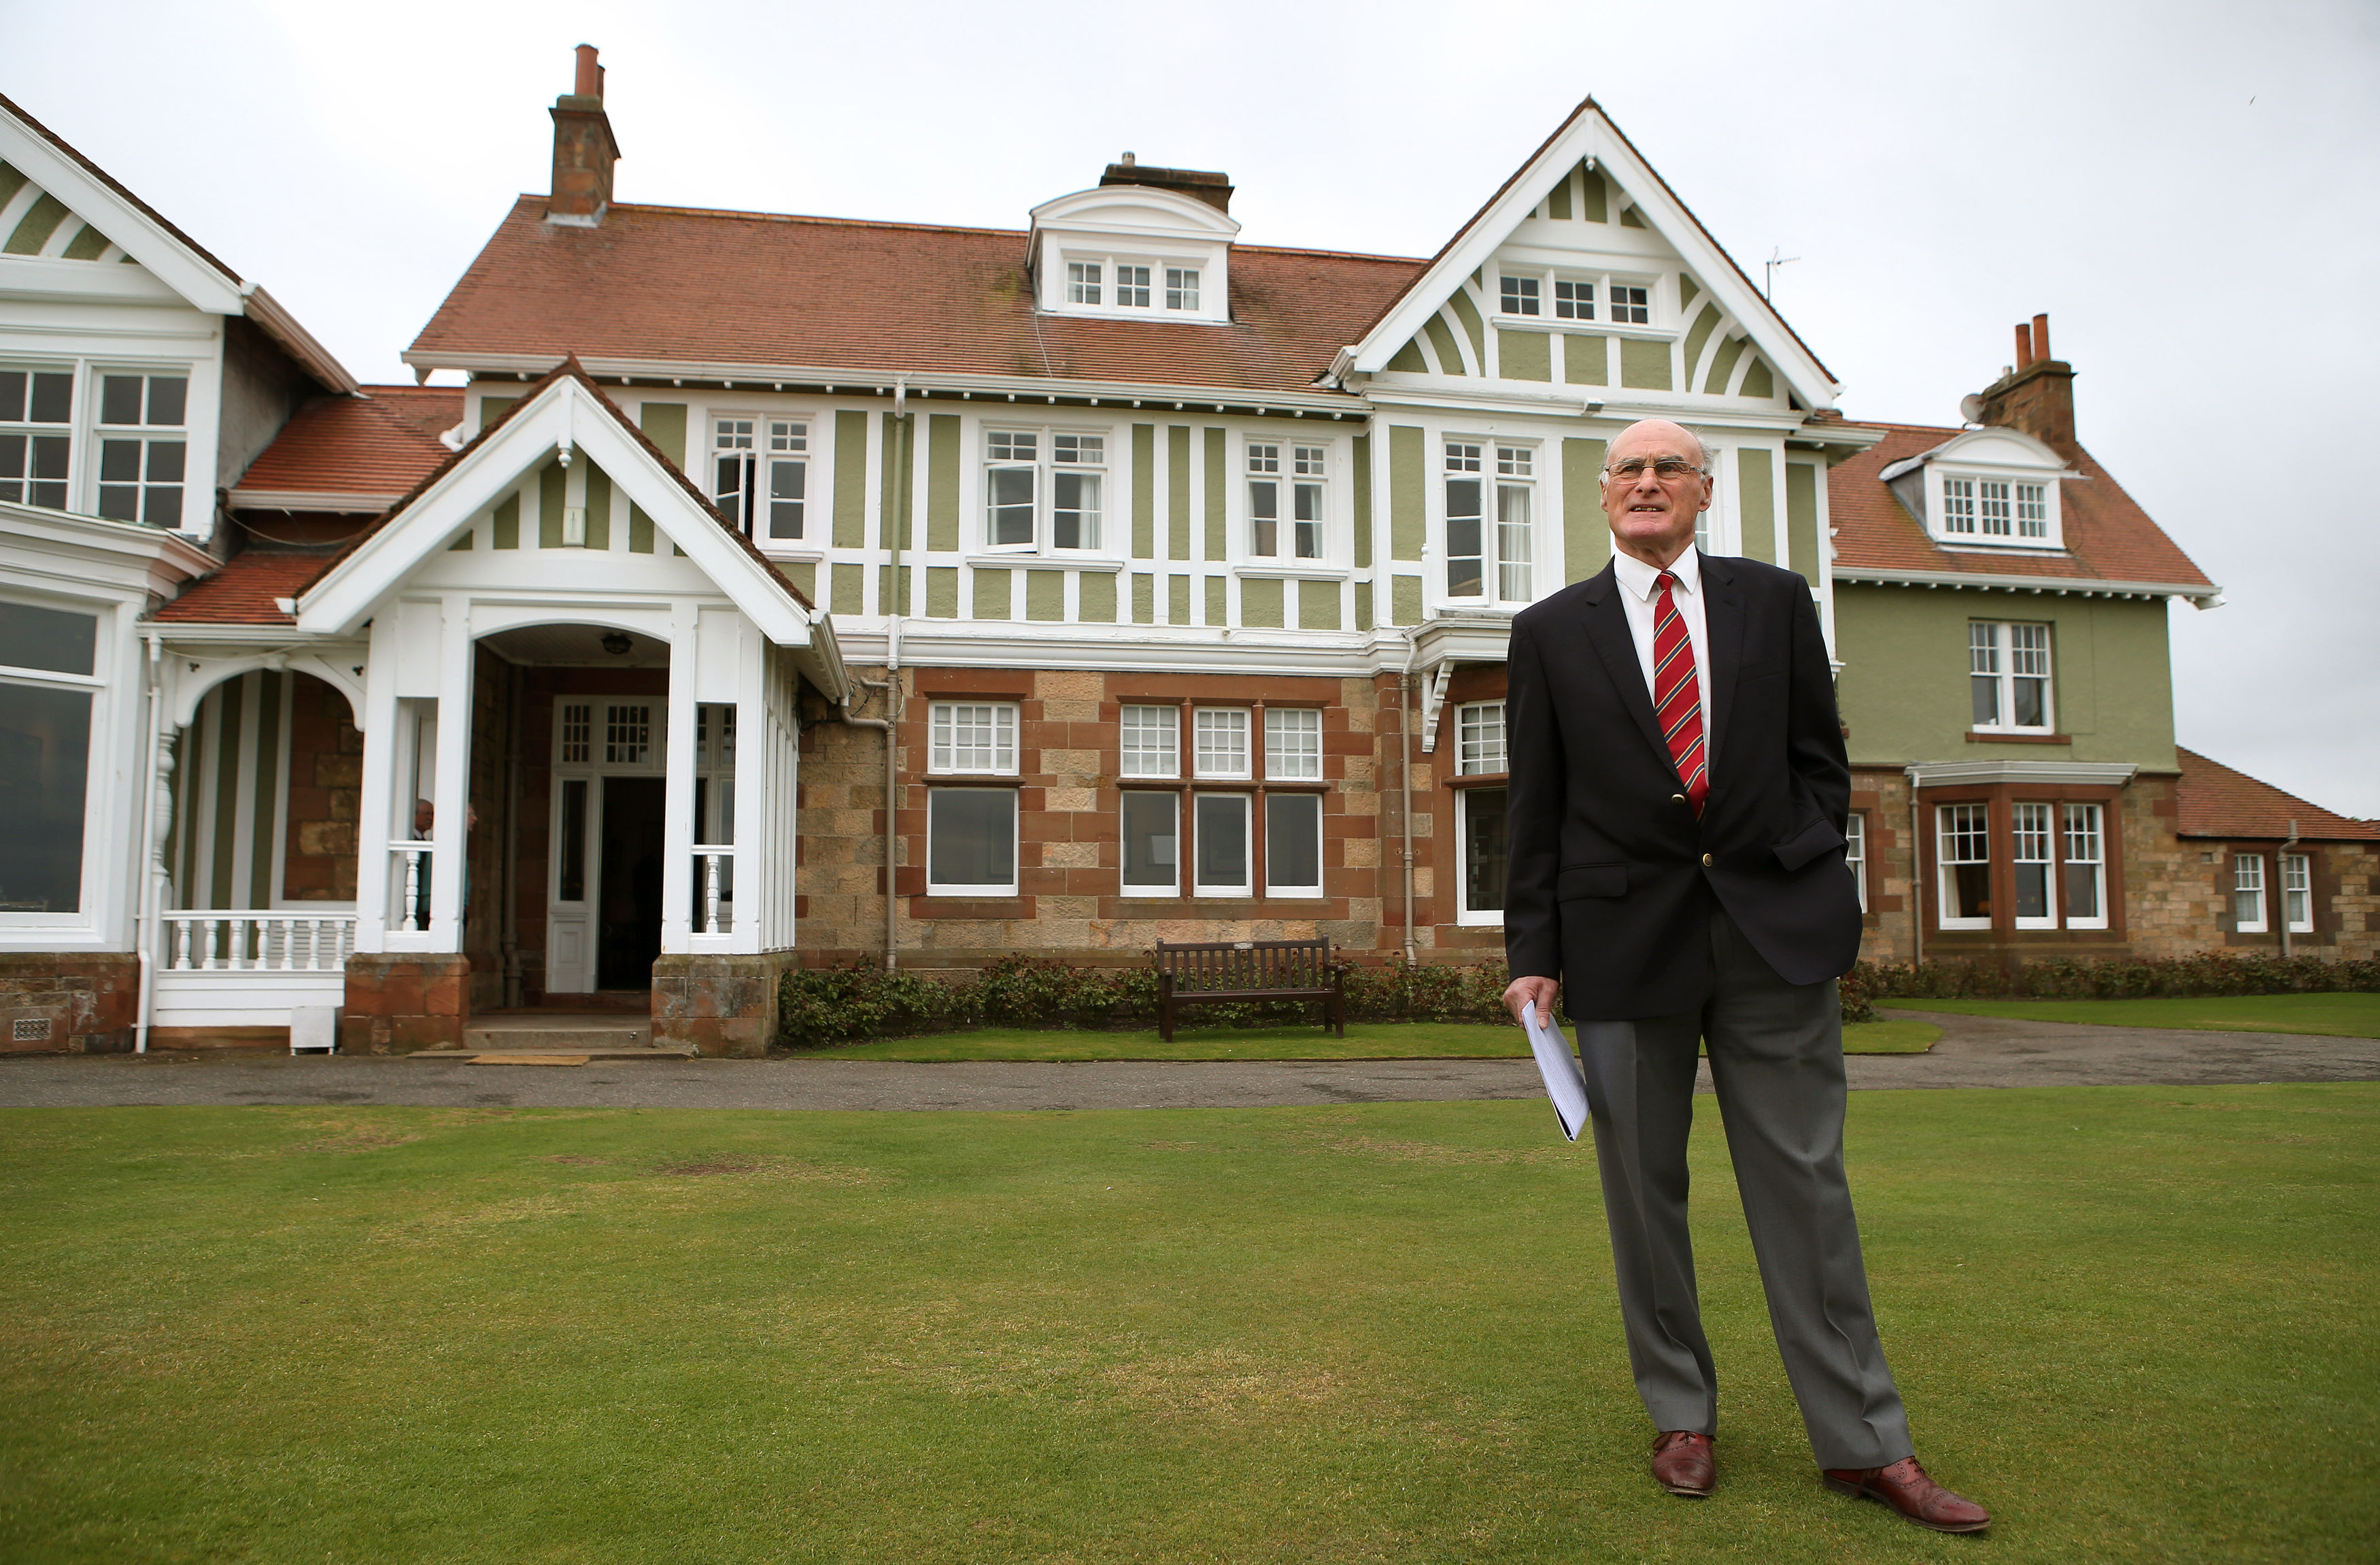 Captain of Muirfield Golf Club, Henry Fairweather stands in front of Muirfield golf club clubhouse, as he prepares to make an announcement on the outcome of a membership ballot, against admitting women as club members, in Muirfield, Scotland, Thursday May